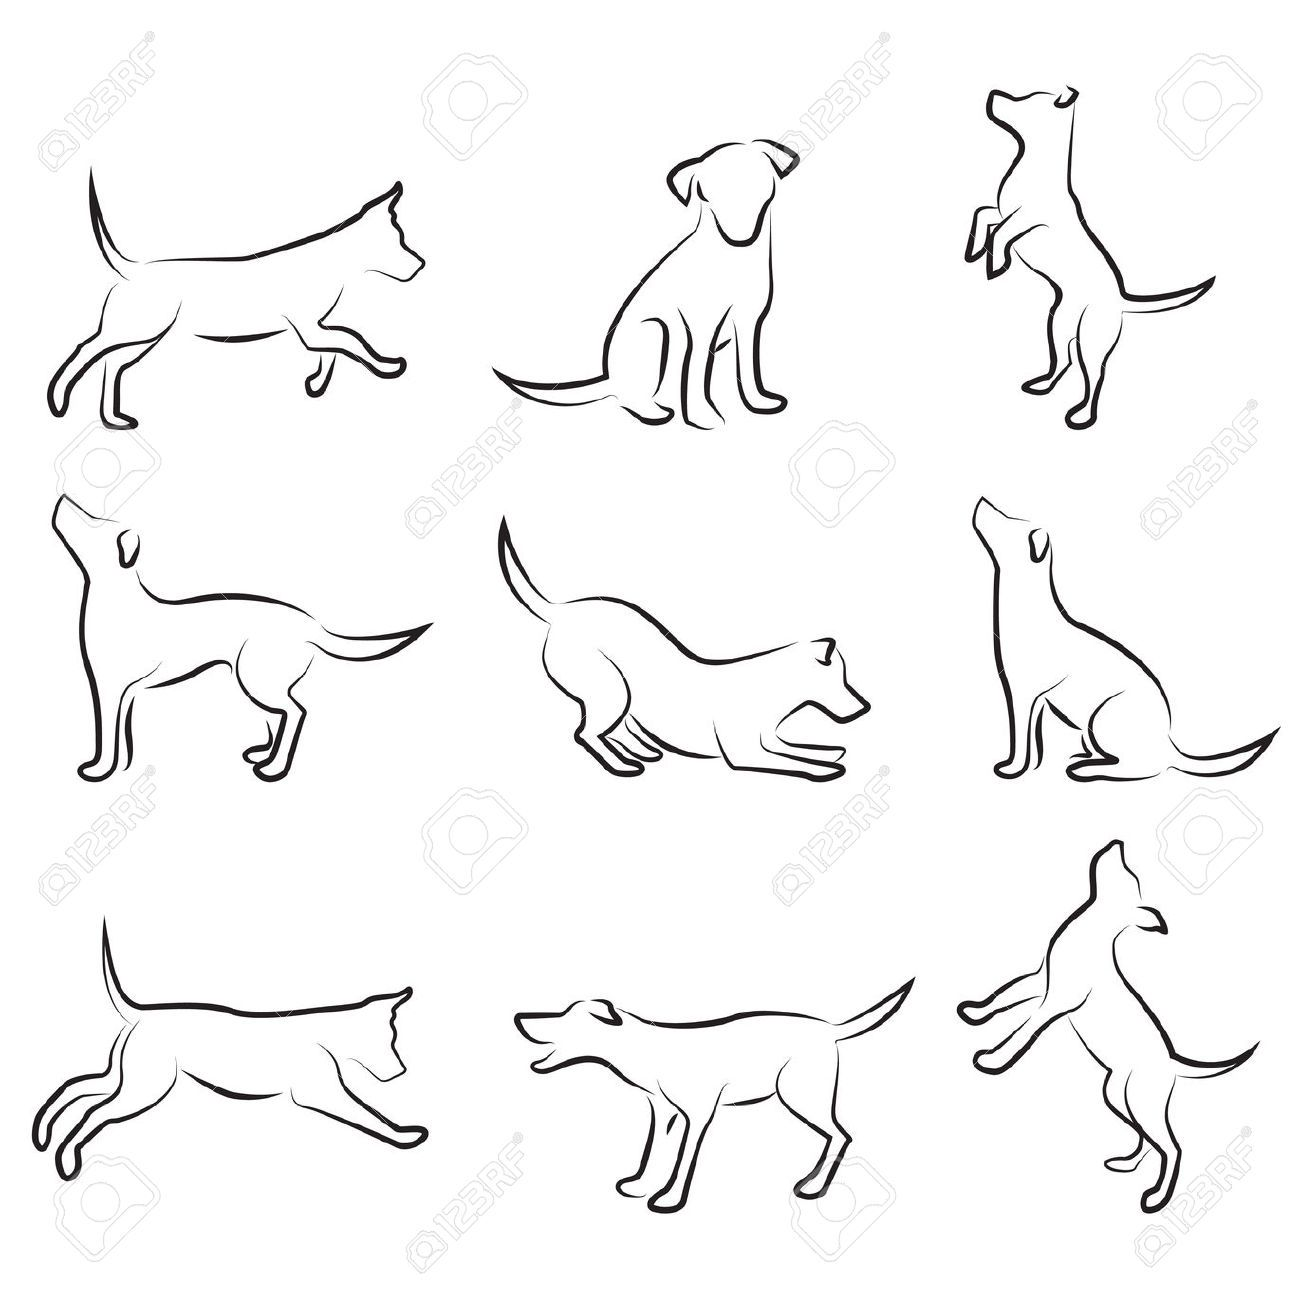 dog drawing set tattoos pinterest dog drawings real dog and rh pinterest com man and dog silhouette tattoo dog ear silhouette tattoo